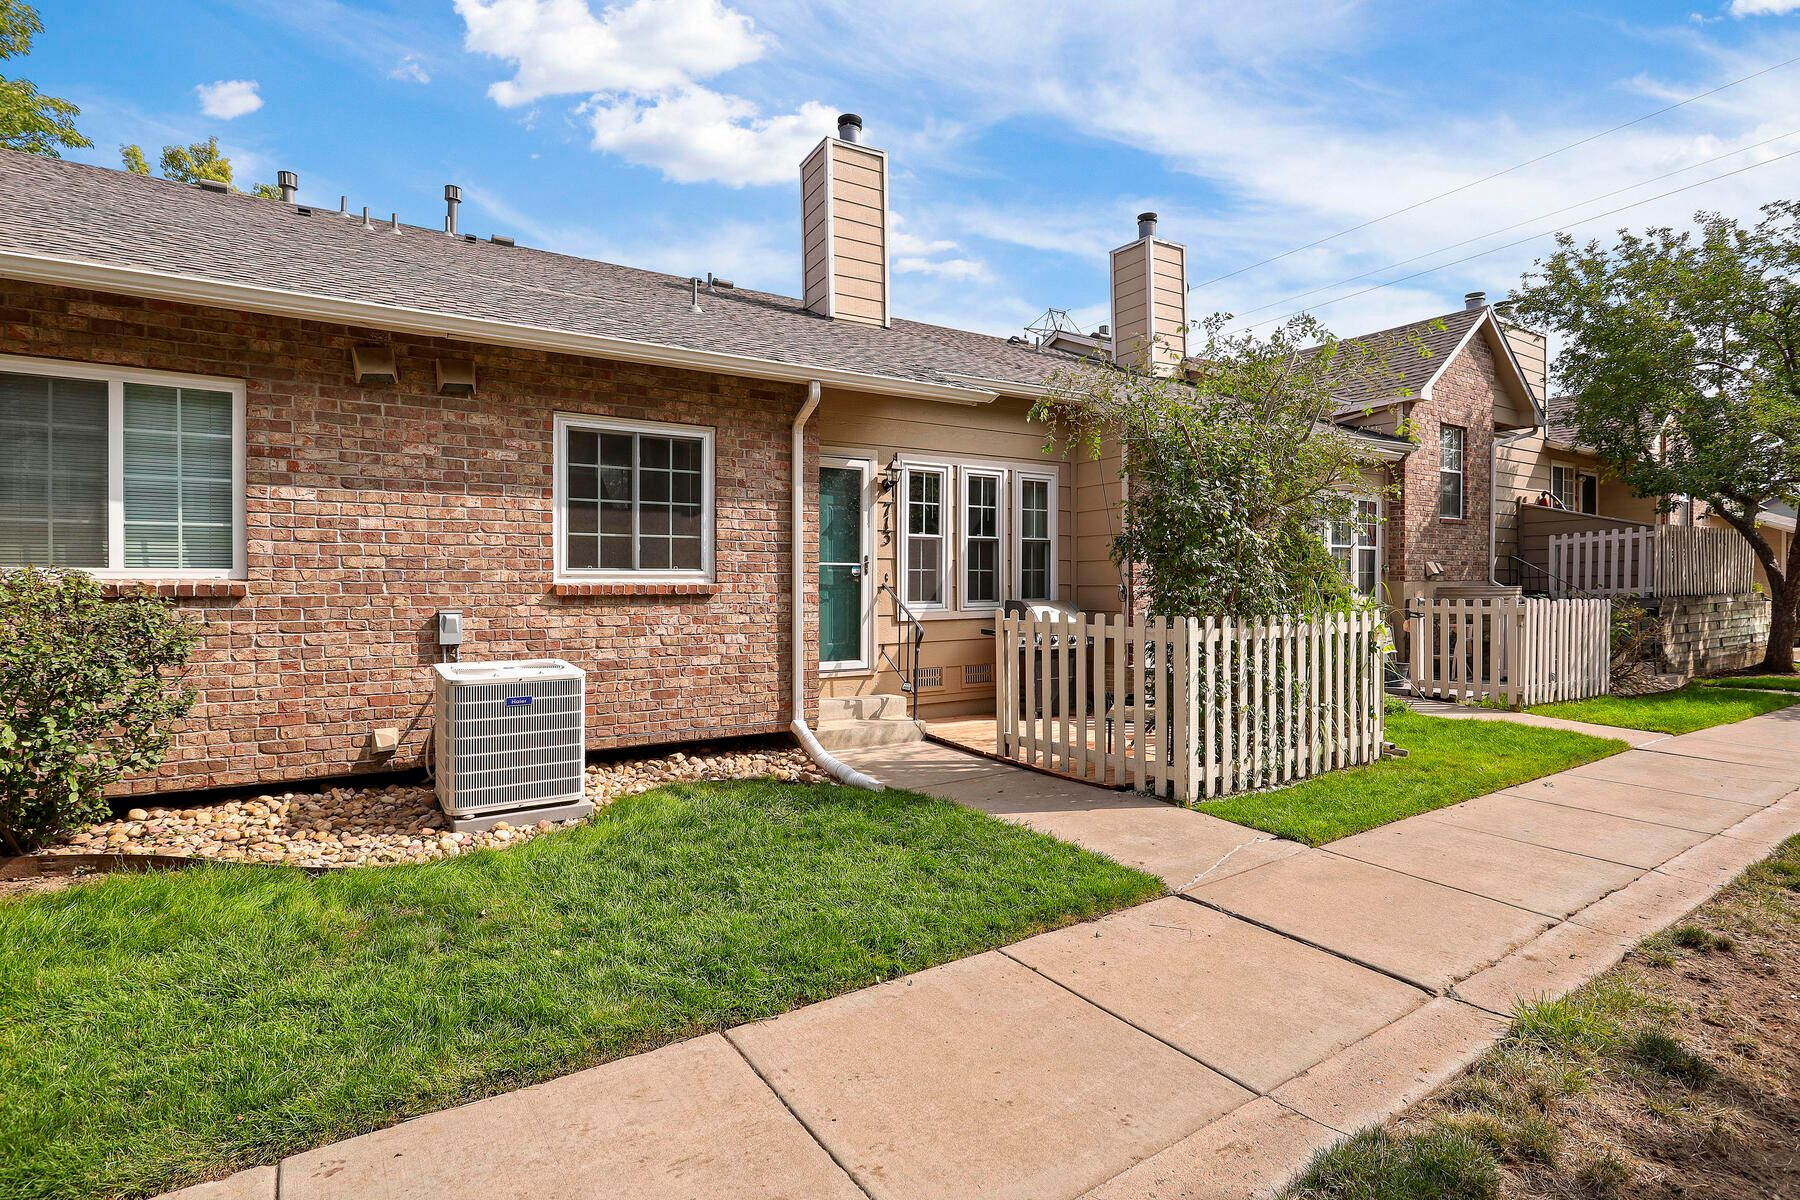 Multi-Family Homes for Sale at 713 S Depew Street, Lakewood, Co, 80226 713 S Depew Street Lakewood, Colorado 80226 United States